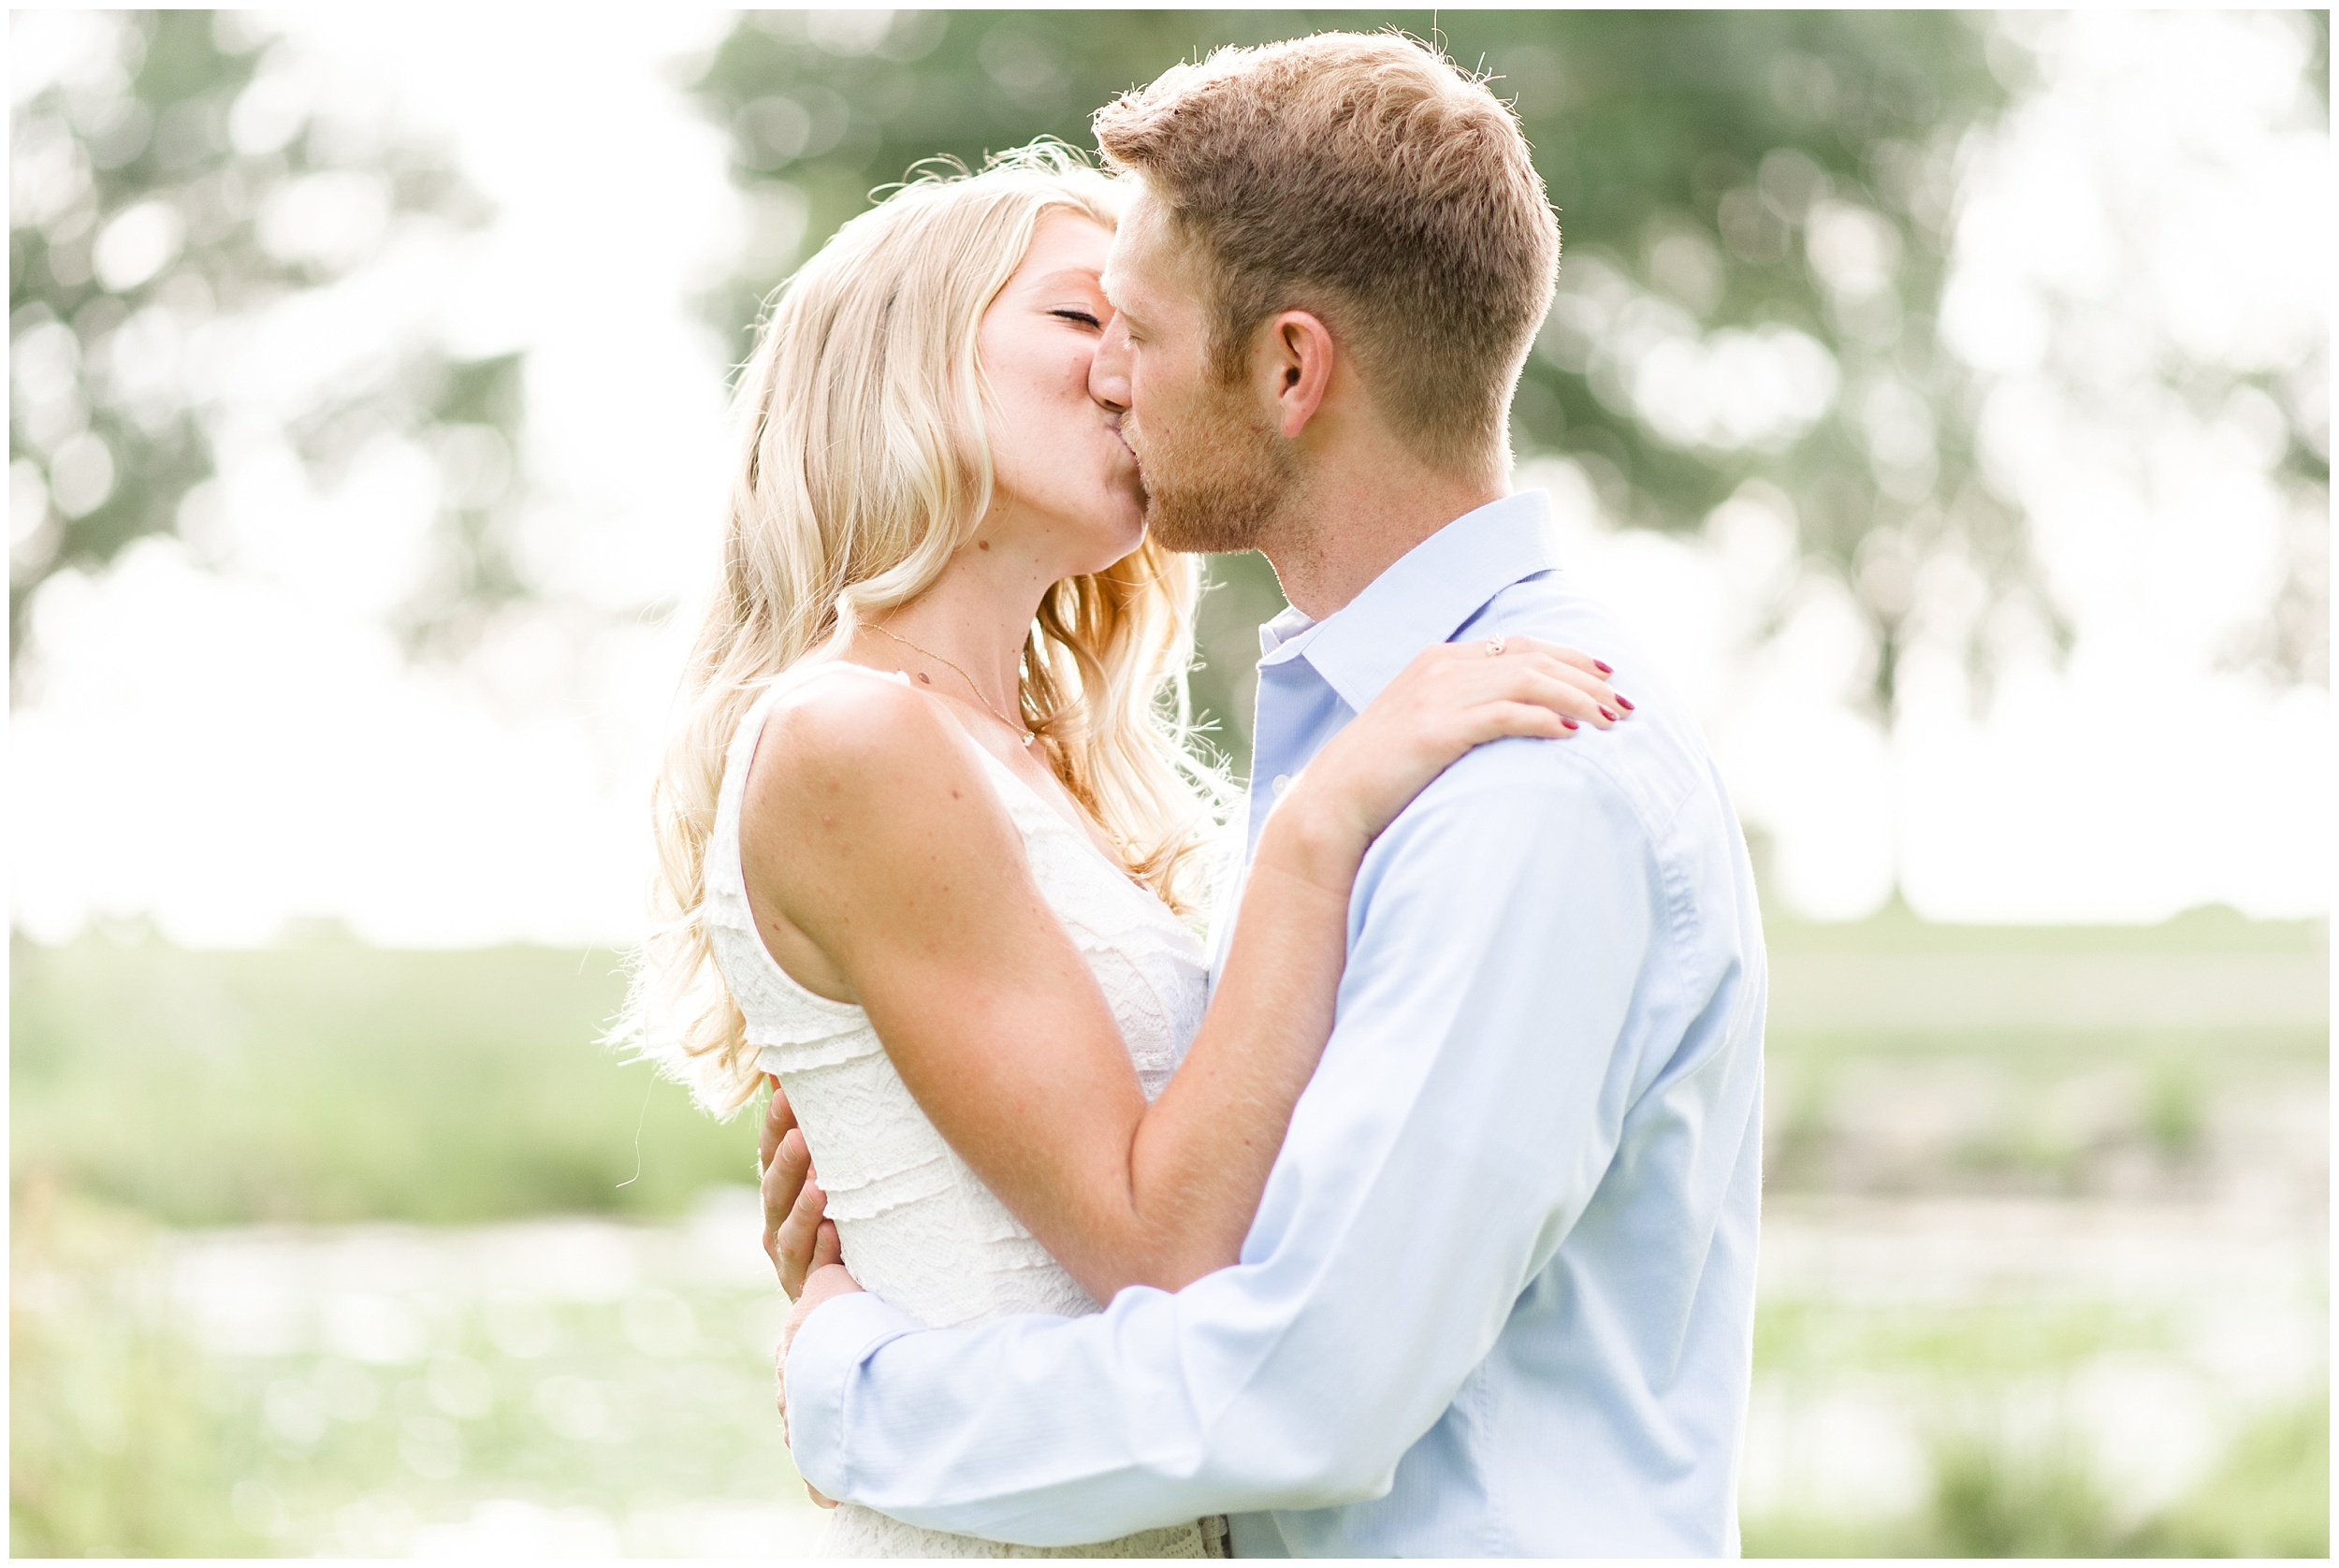 tenney-park-engagement-session-madison-wisconsin-bright-light-airy-wedding-photographer_0017.jpg